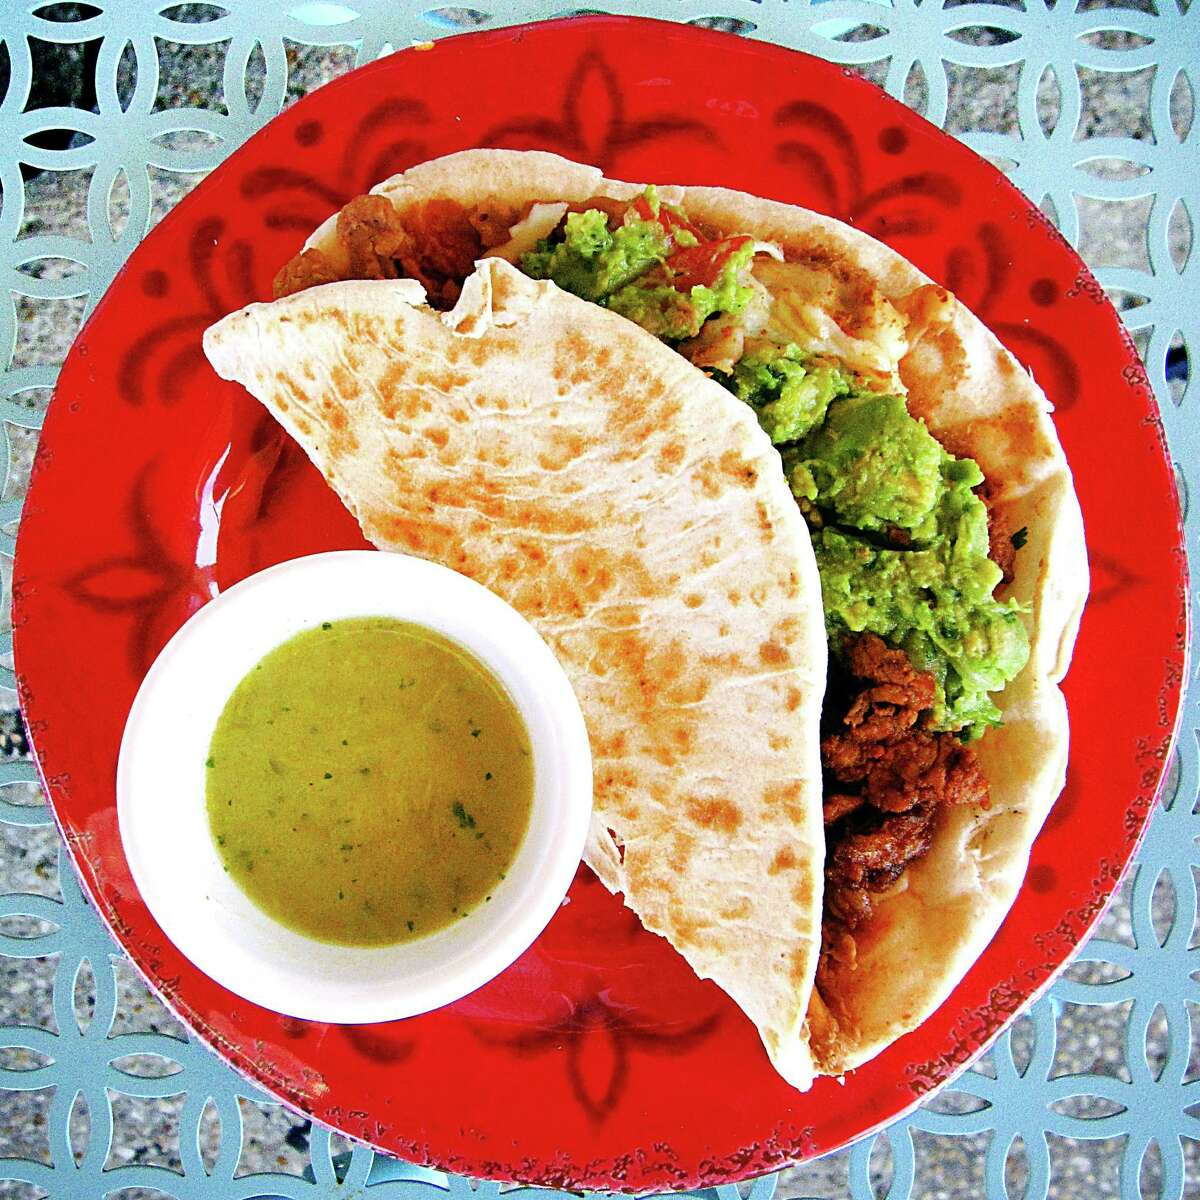 Taco of the Week: Blue Demon taco with al pastor, beans, white cheese and guacamole on a handmade toasted tortilla from Taco Libre.